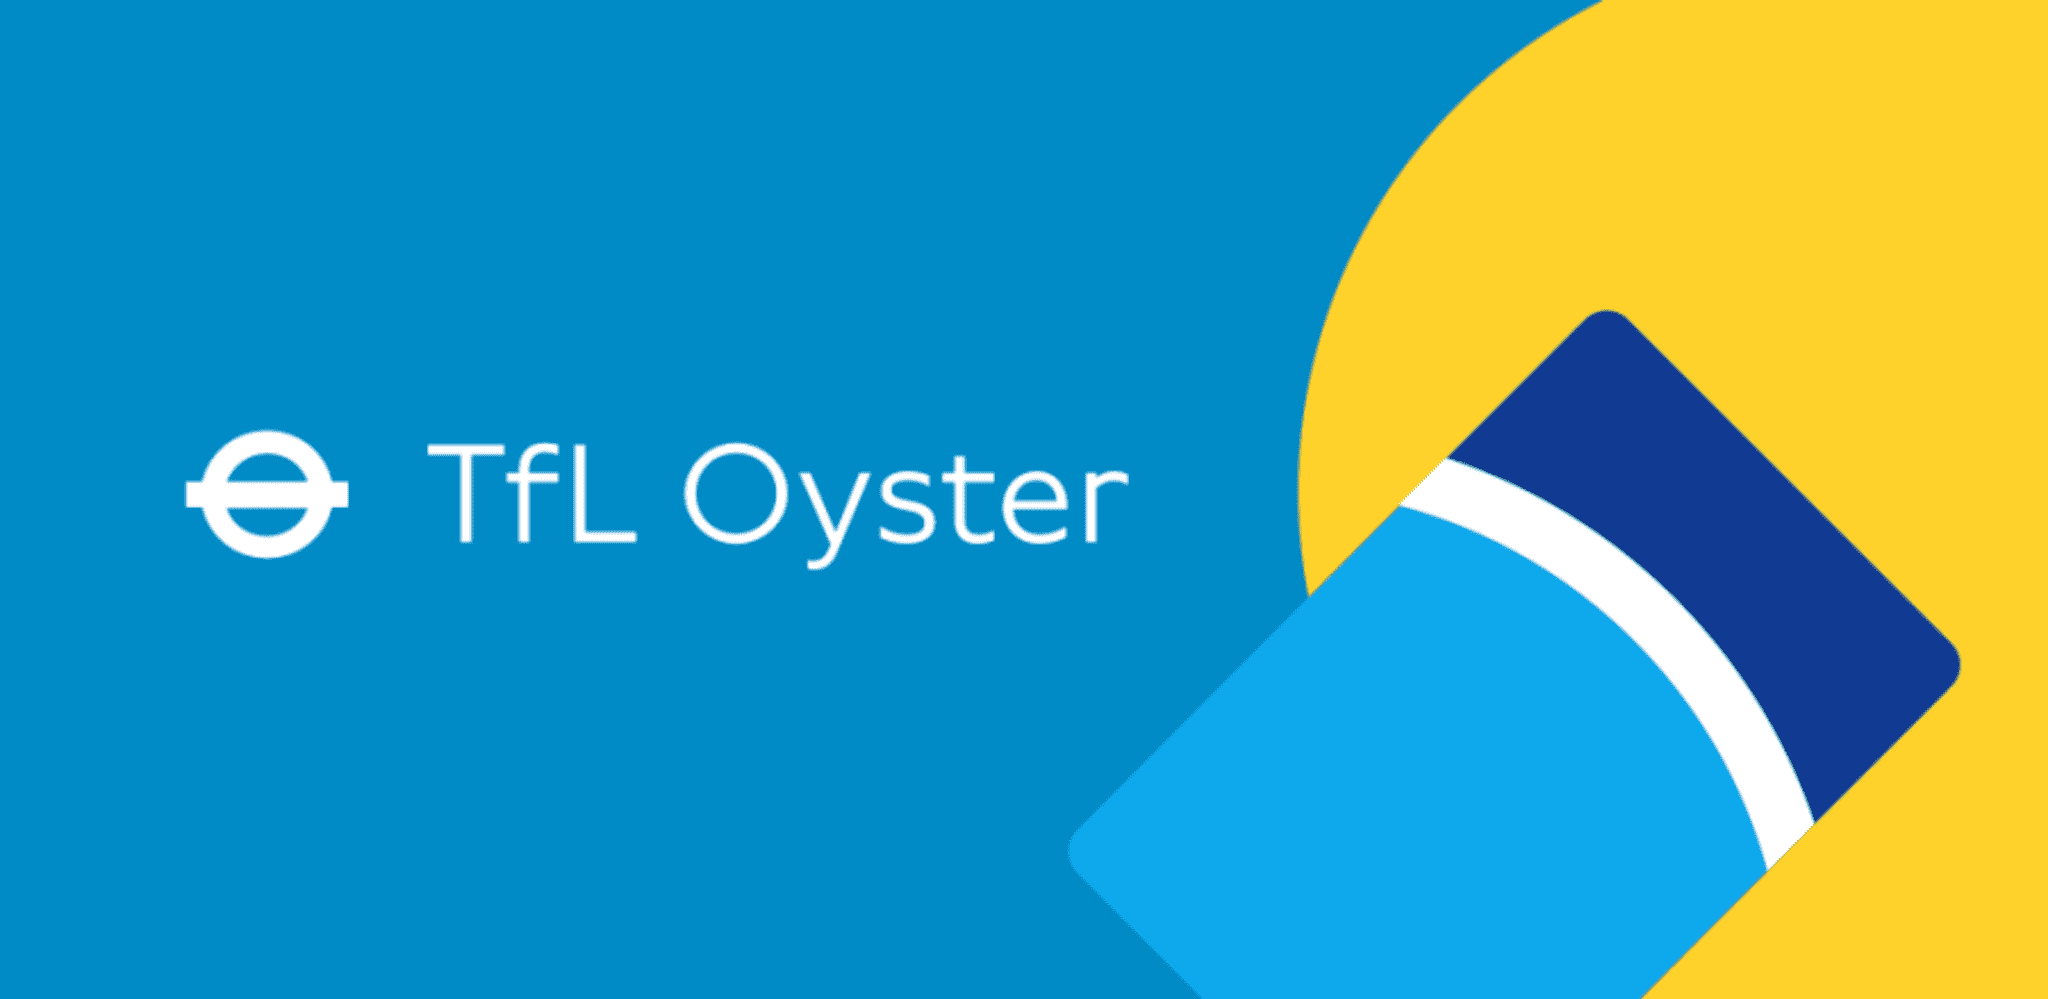 App of the Week #3: TFL Oyster